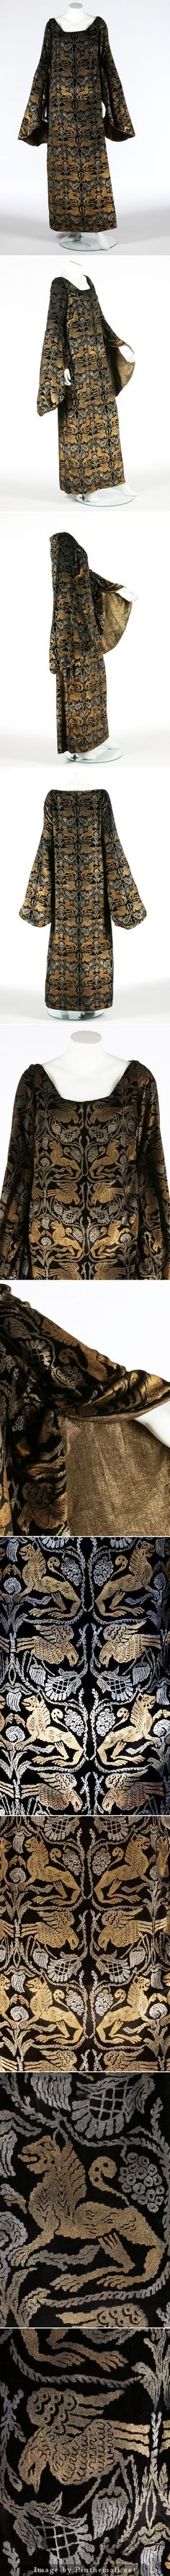 A Maria Gallenga stencilled velvet medieval style dress, circa 1925. the black silk velvet printed overall in gold and silver with birds and lions, with gold lame lined hanging sleeves. KTA